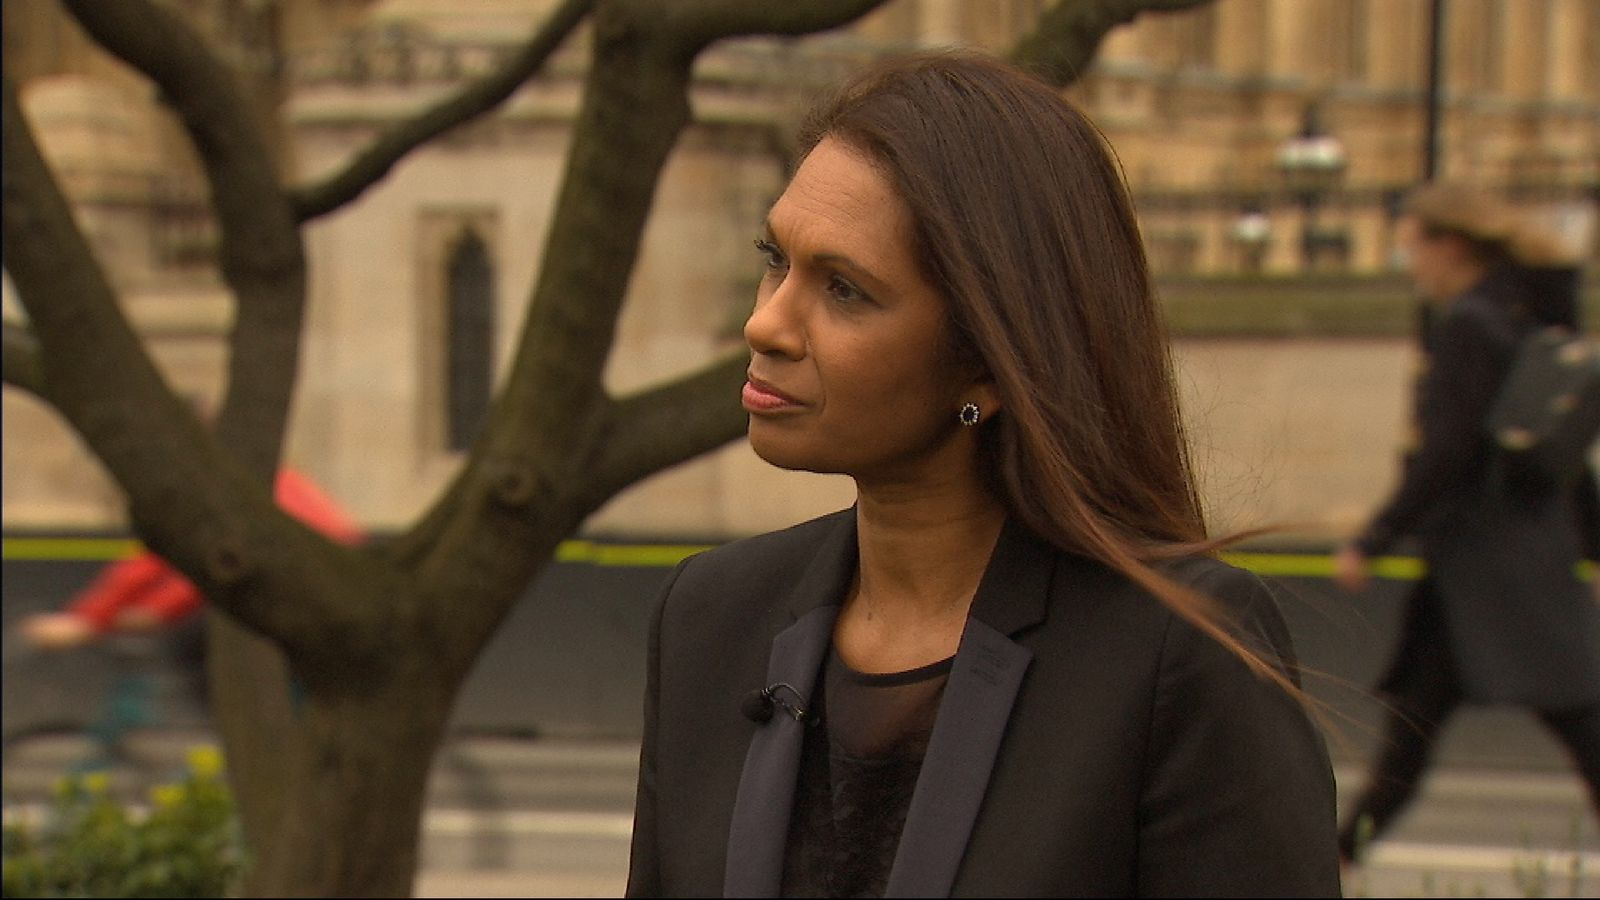 Gina Miller, who launched the Supreme Court battle on Brexit